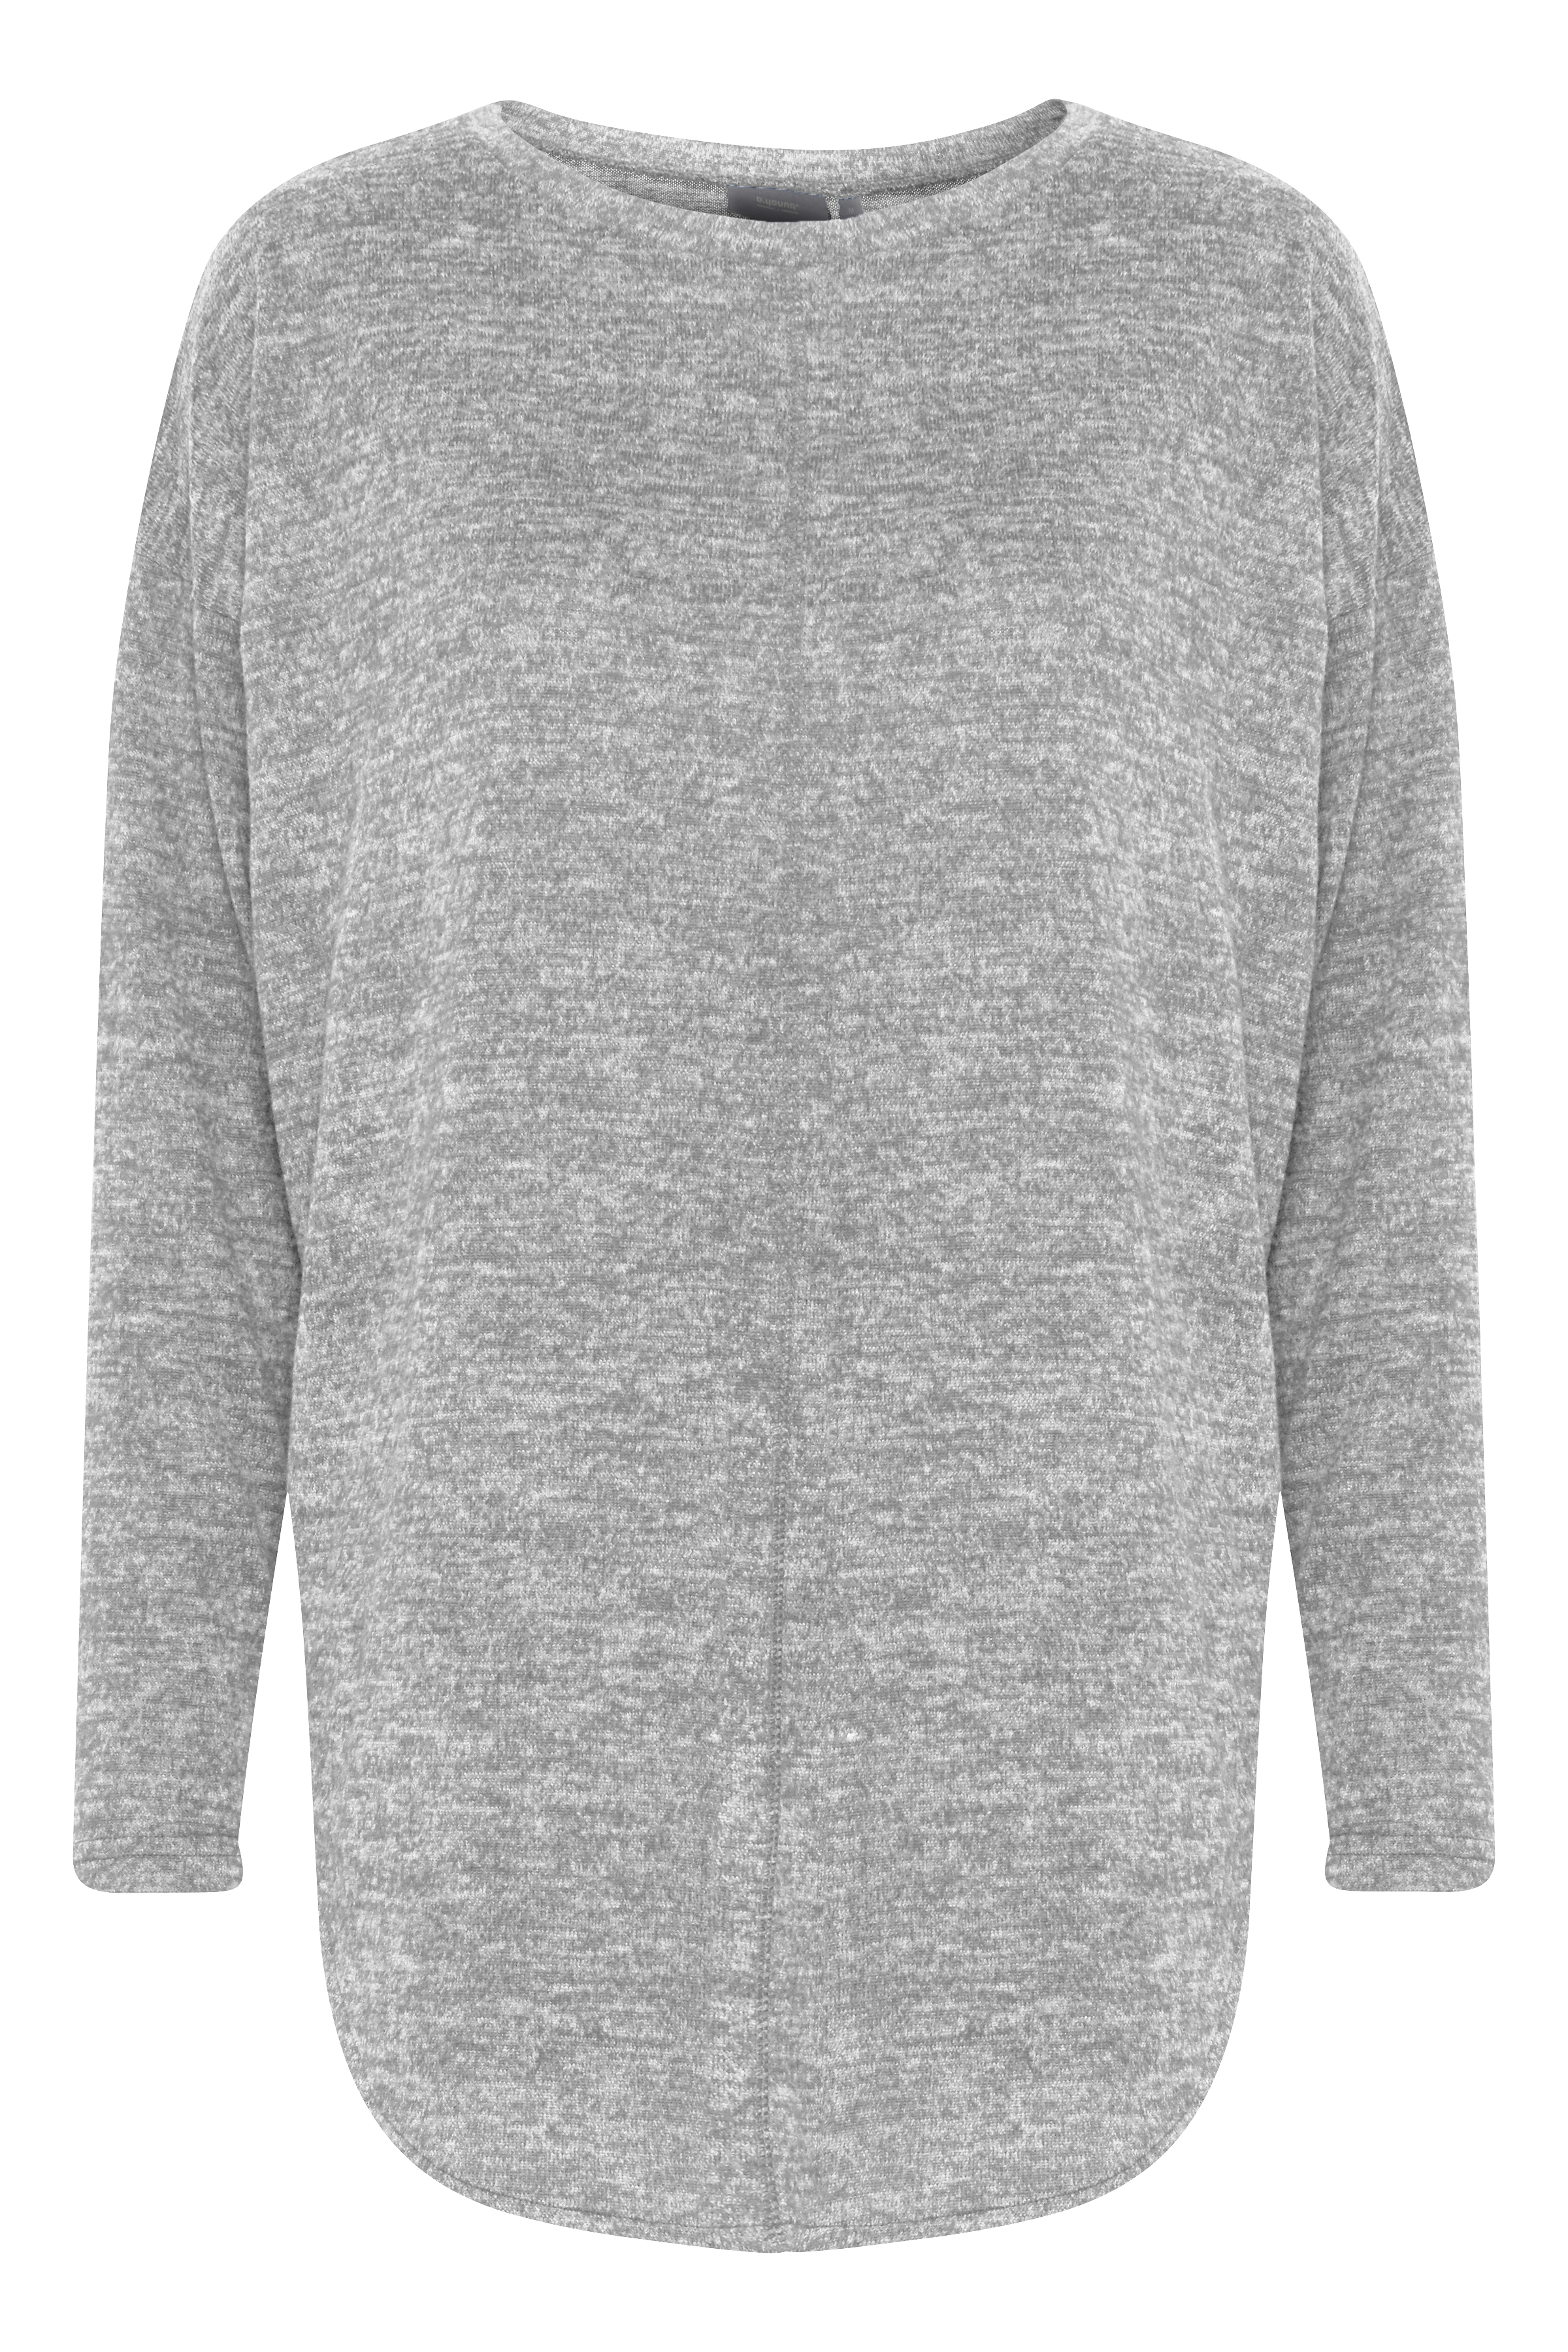 Med. Grey Mel. Jersey tunic from b.young – Buy Med. Grey Mel. Jersey tunic from size XS-L here